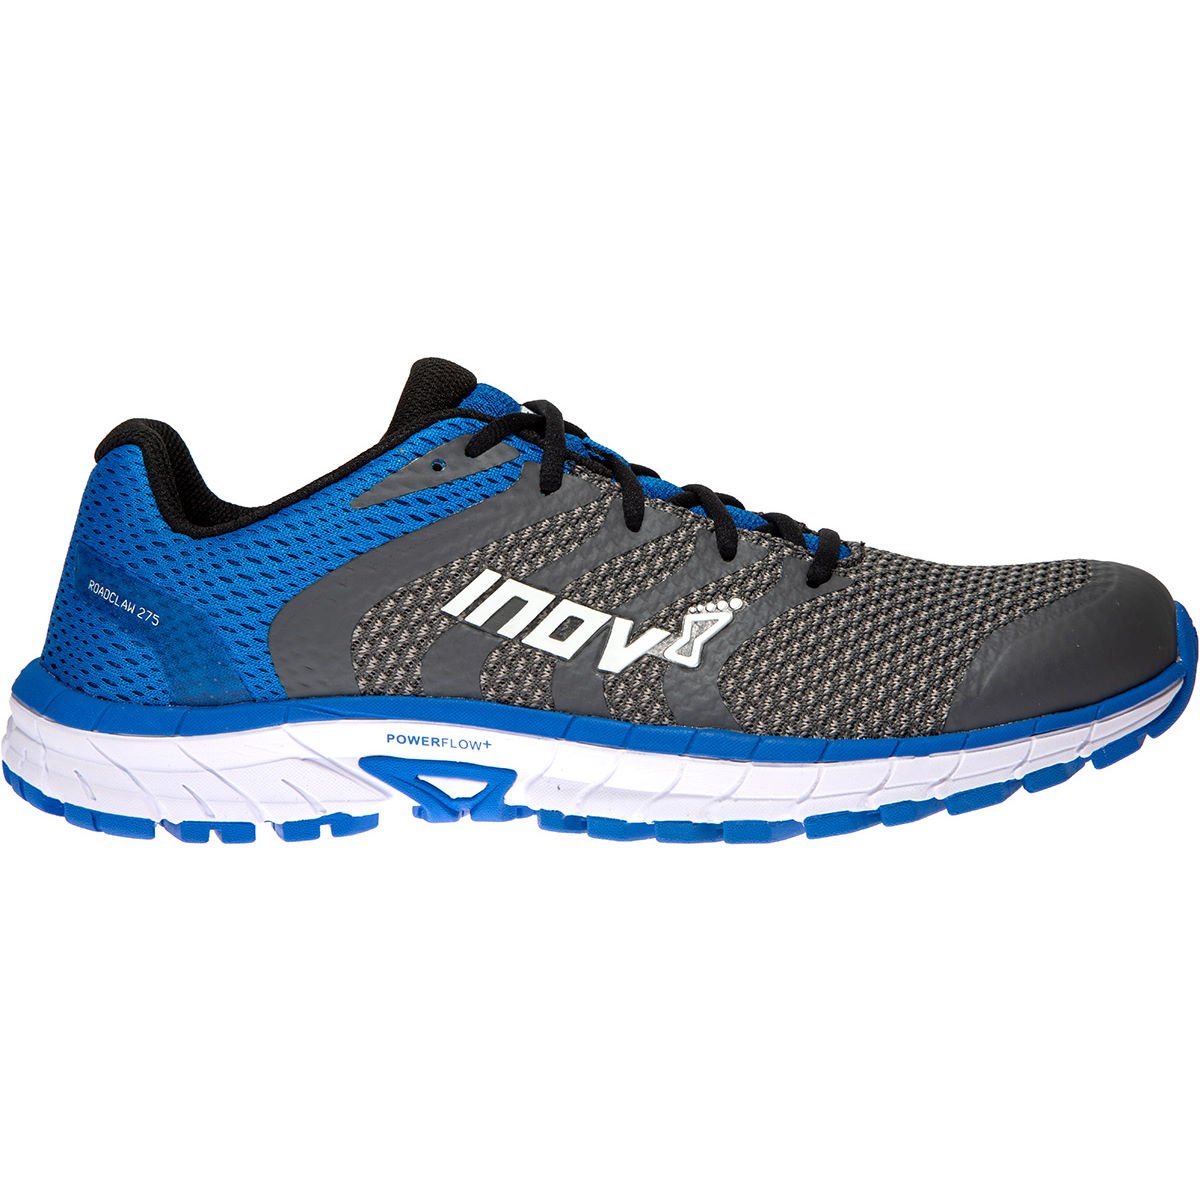 Inov-8 Roadclaw 275 Knit Running Shoes - Uk 11.5 Grey/blue